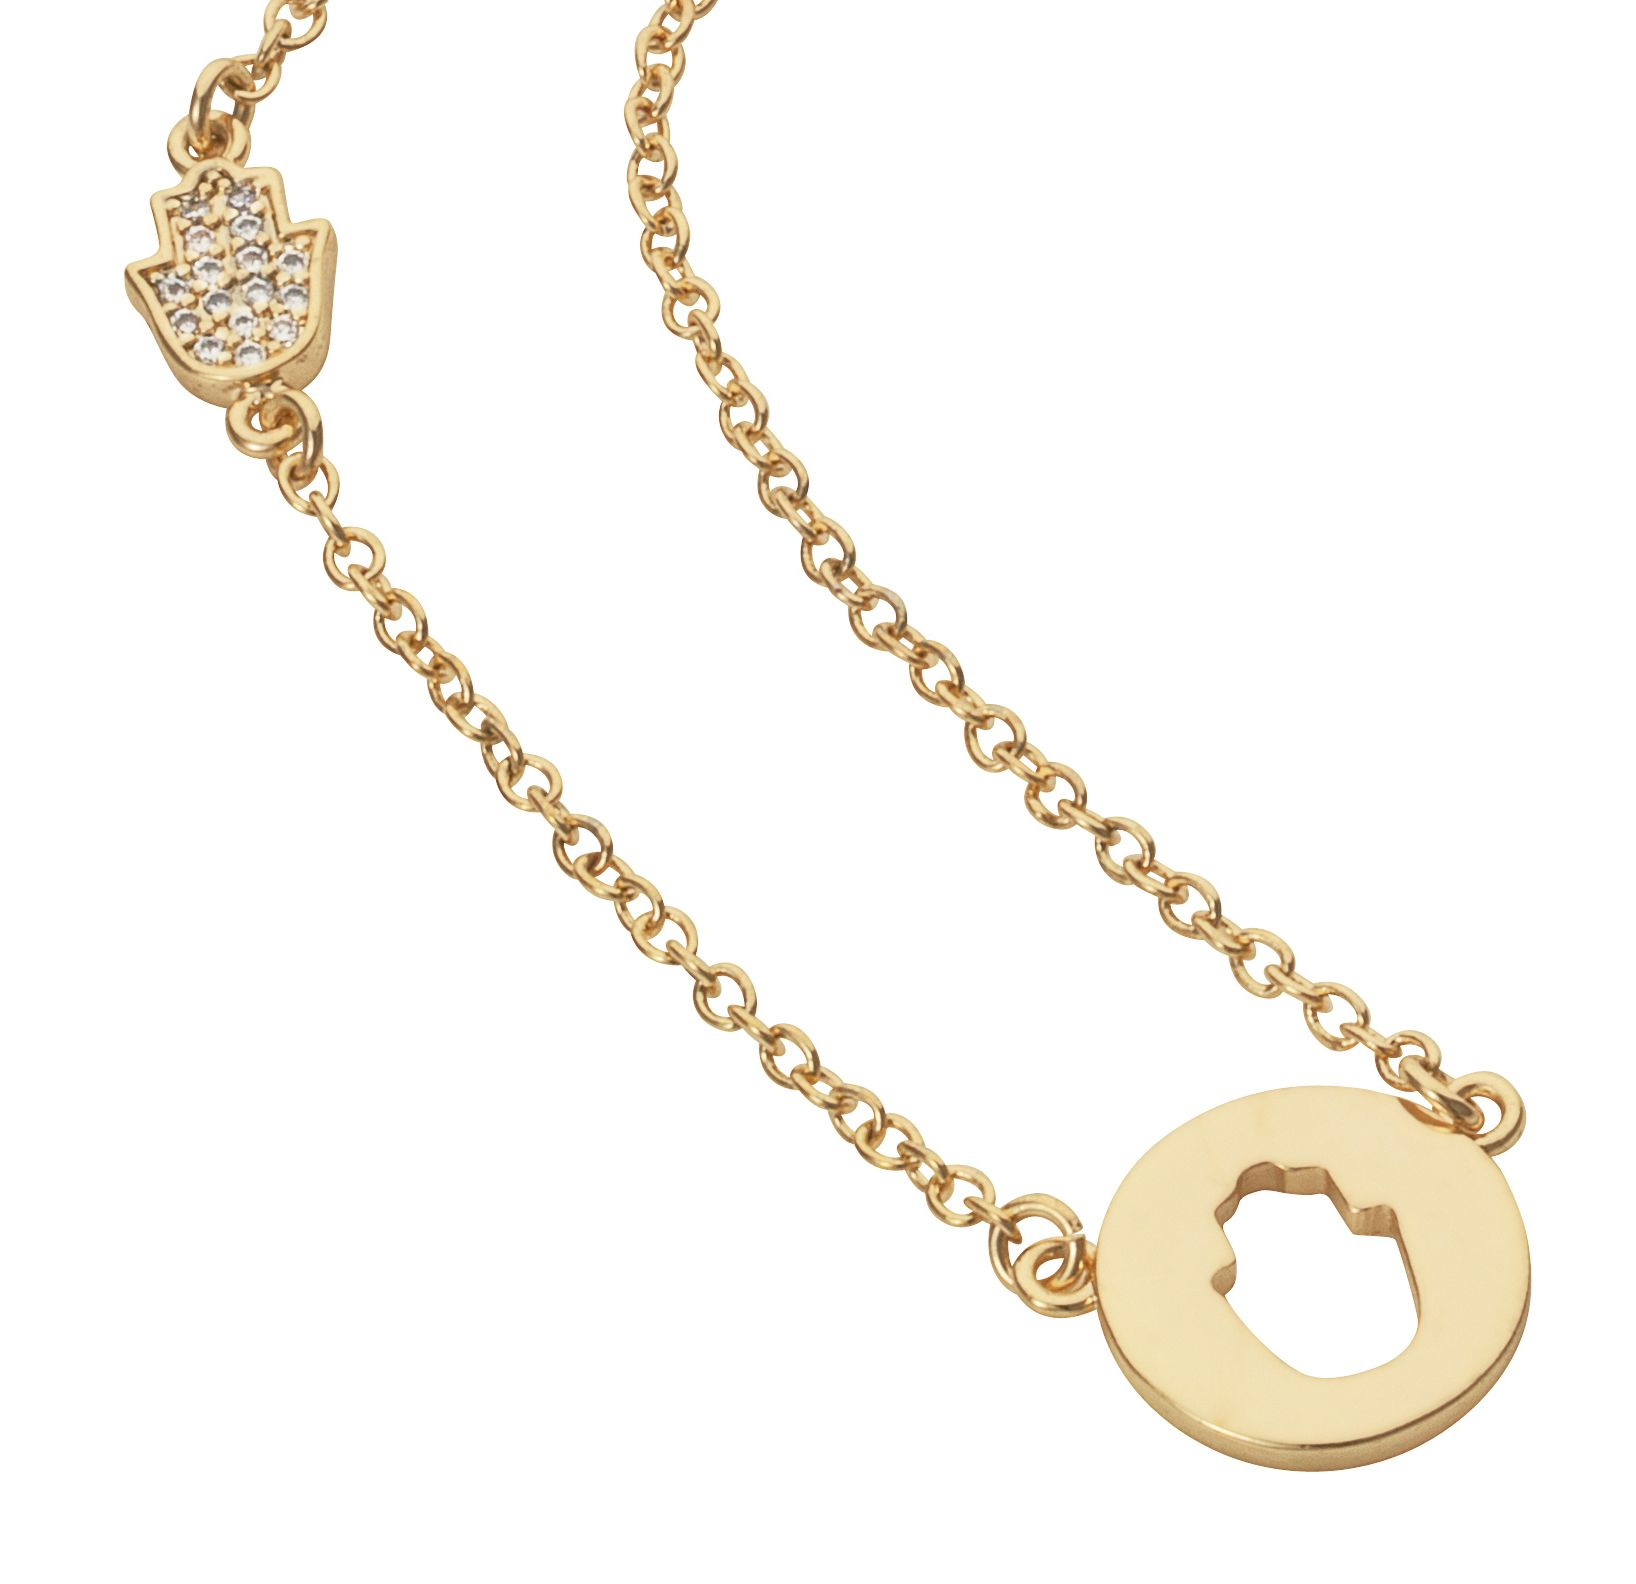 Yellow gold plated disc cut out hand necklace